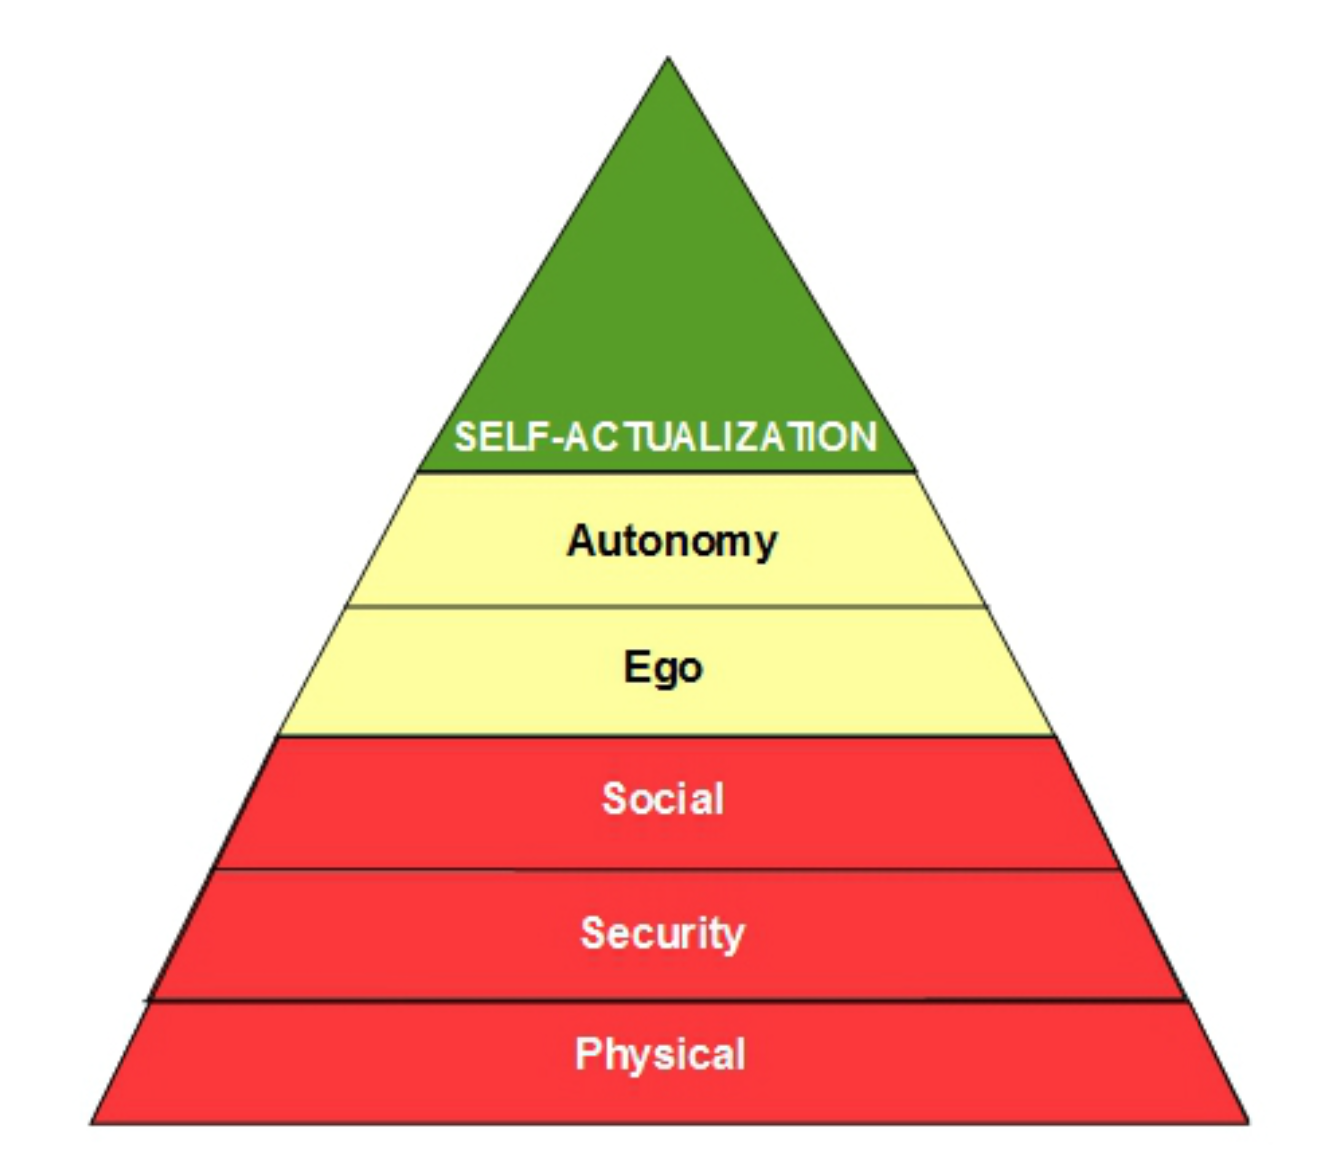 Abraham Malsow's hierarchy of needs